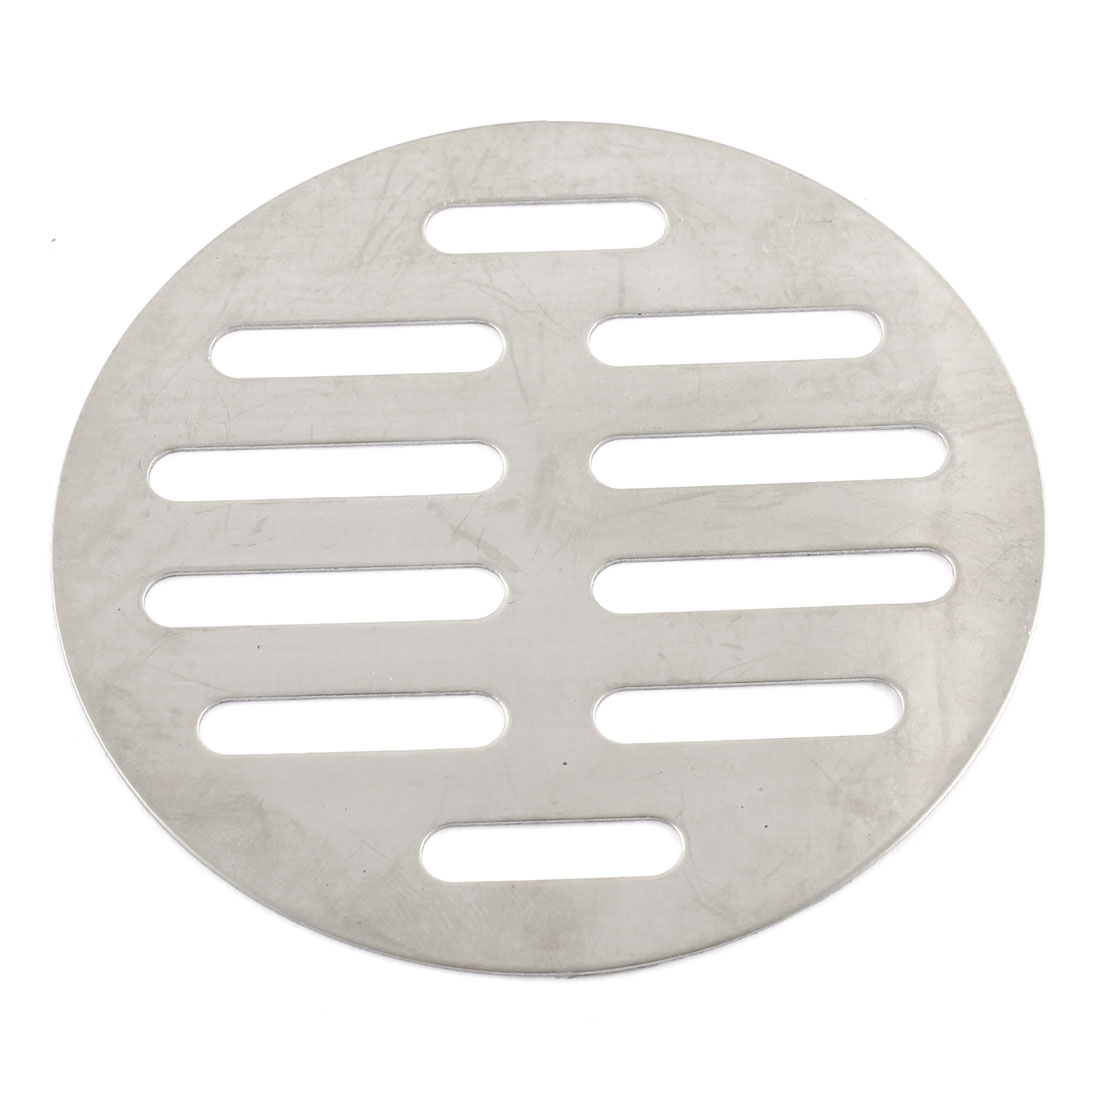 3.5 Inch Stainless Steel Floor Strainer Drain Cover Bath Sink Filter